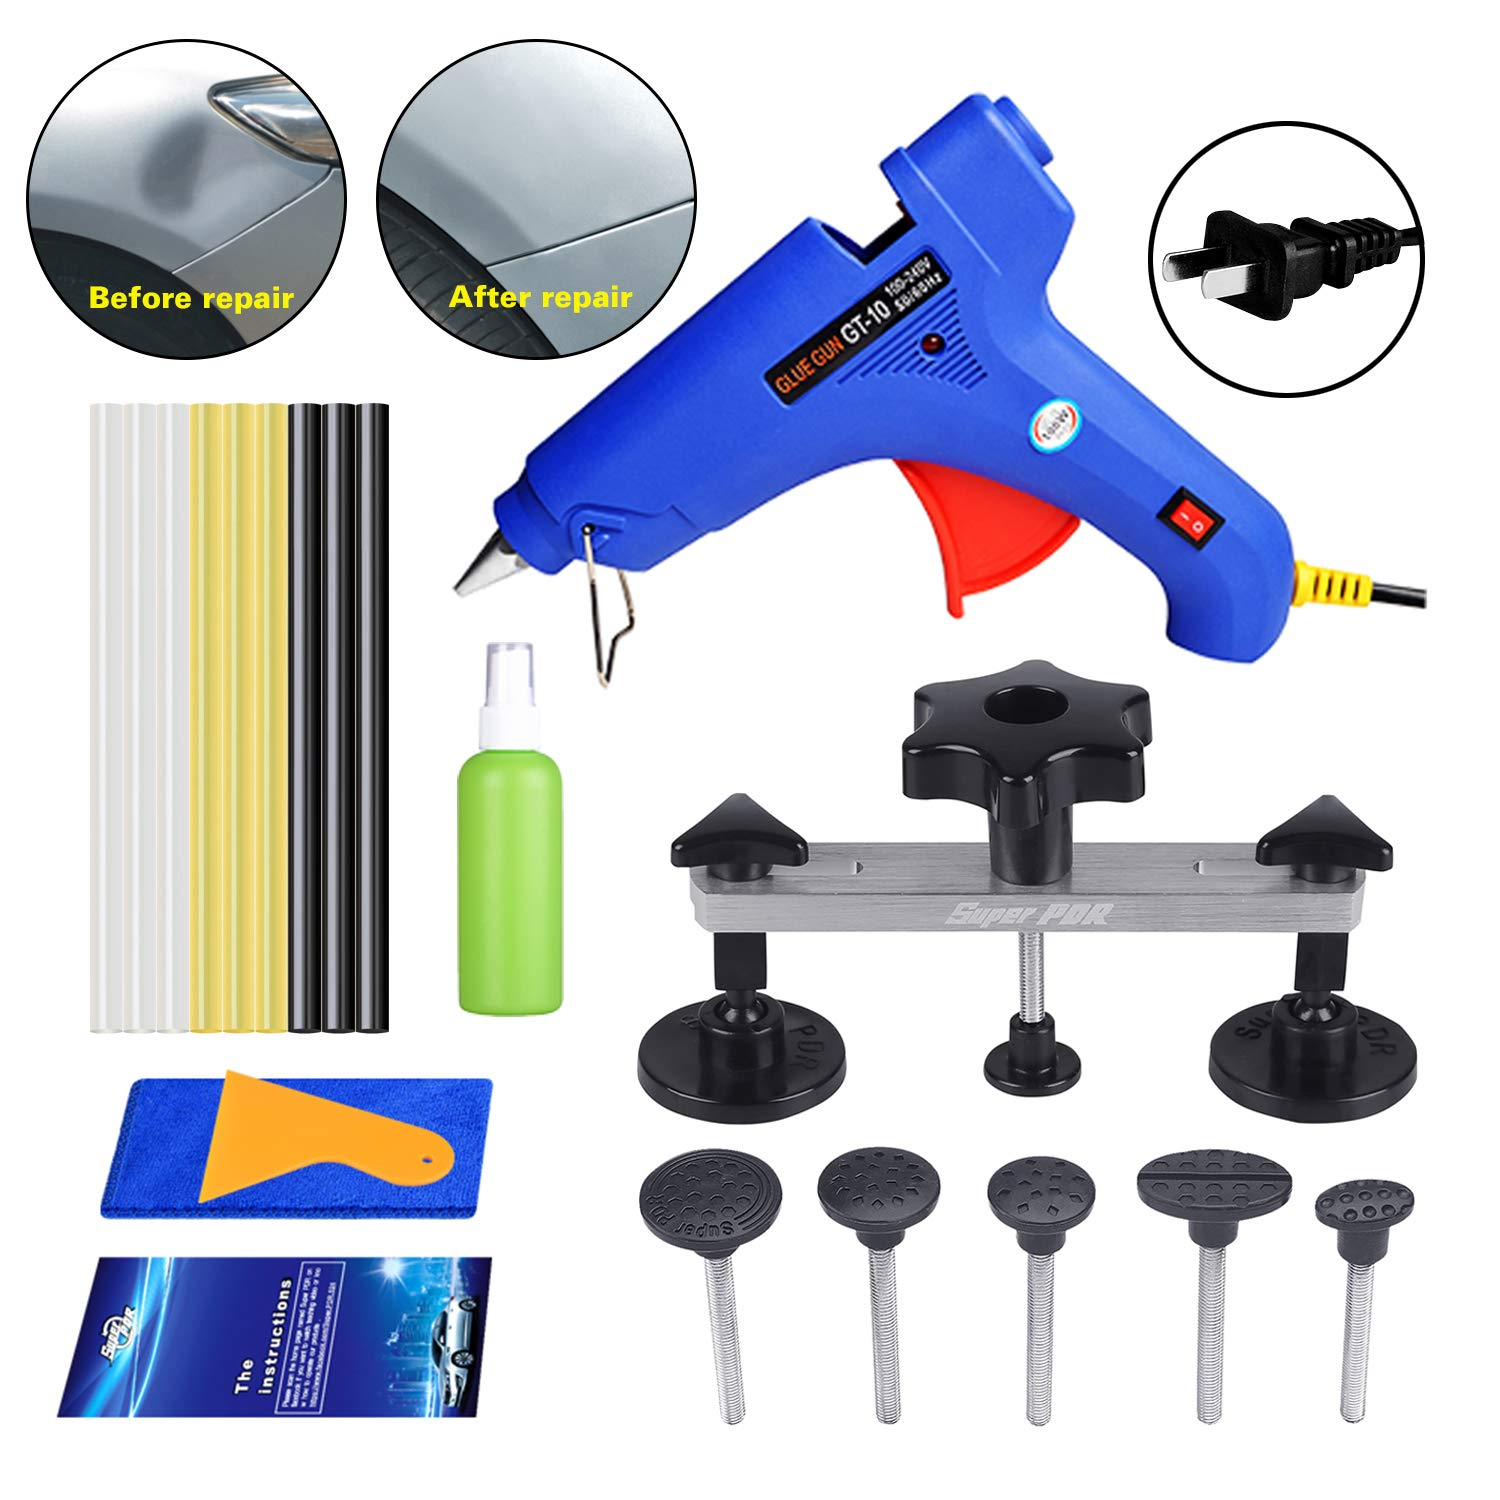 Fly5D Car Dent Removal Repair Tools Kit Dent Puller Set for Automobile Body Motorcycle Refrigerator Washing Machine